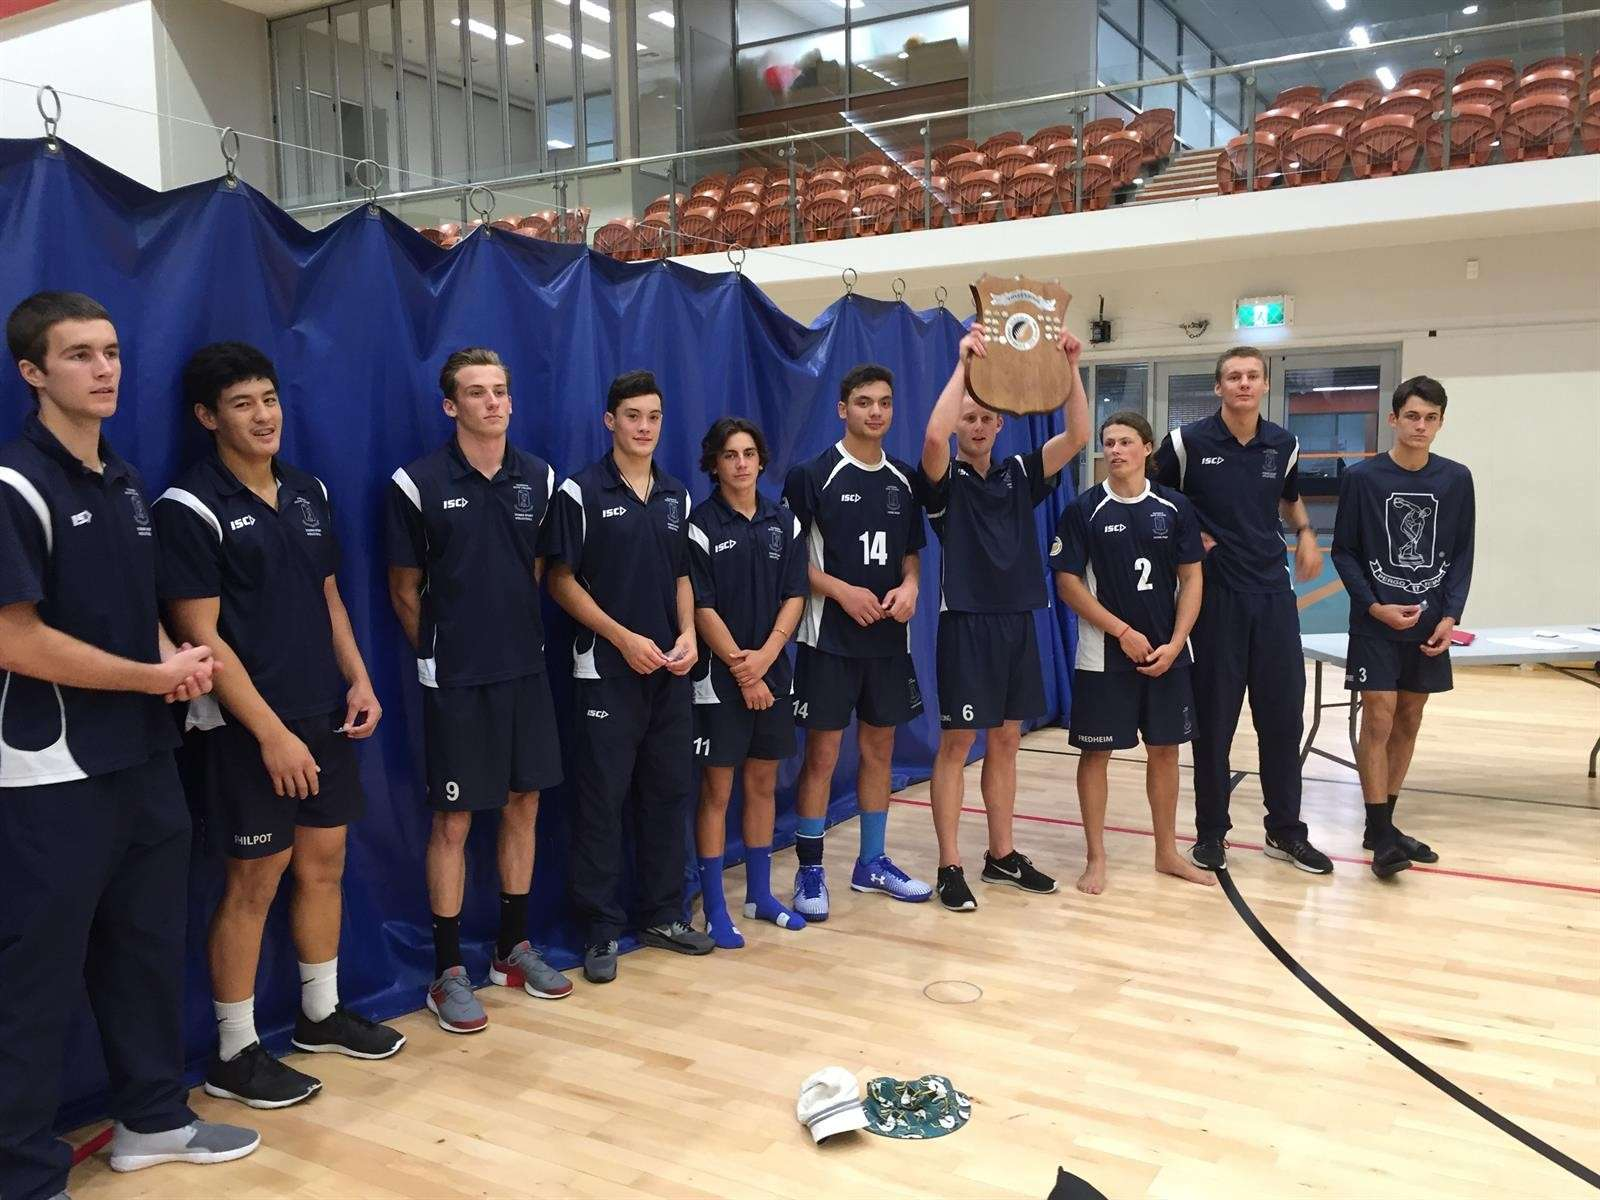 Volleyball - Super 8 - Sports News - About - Titan Sports  -  Tauranga Boys' College